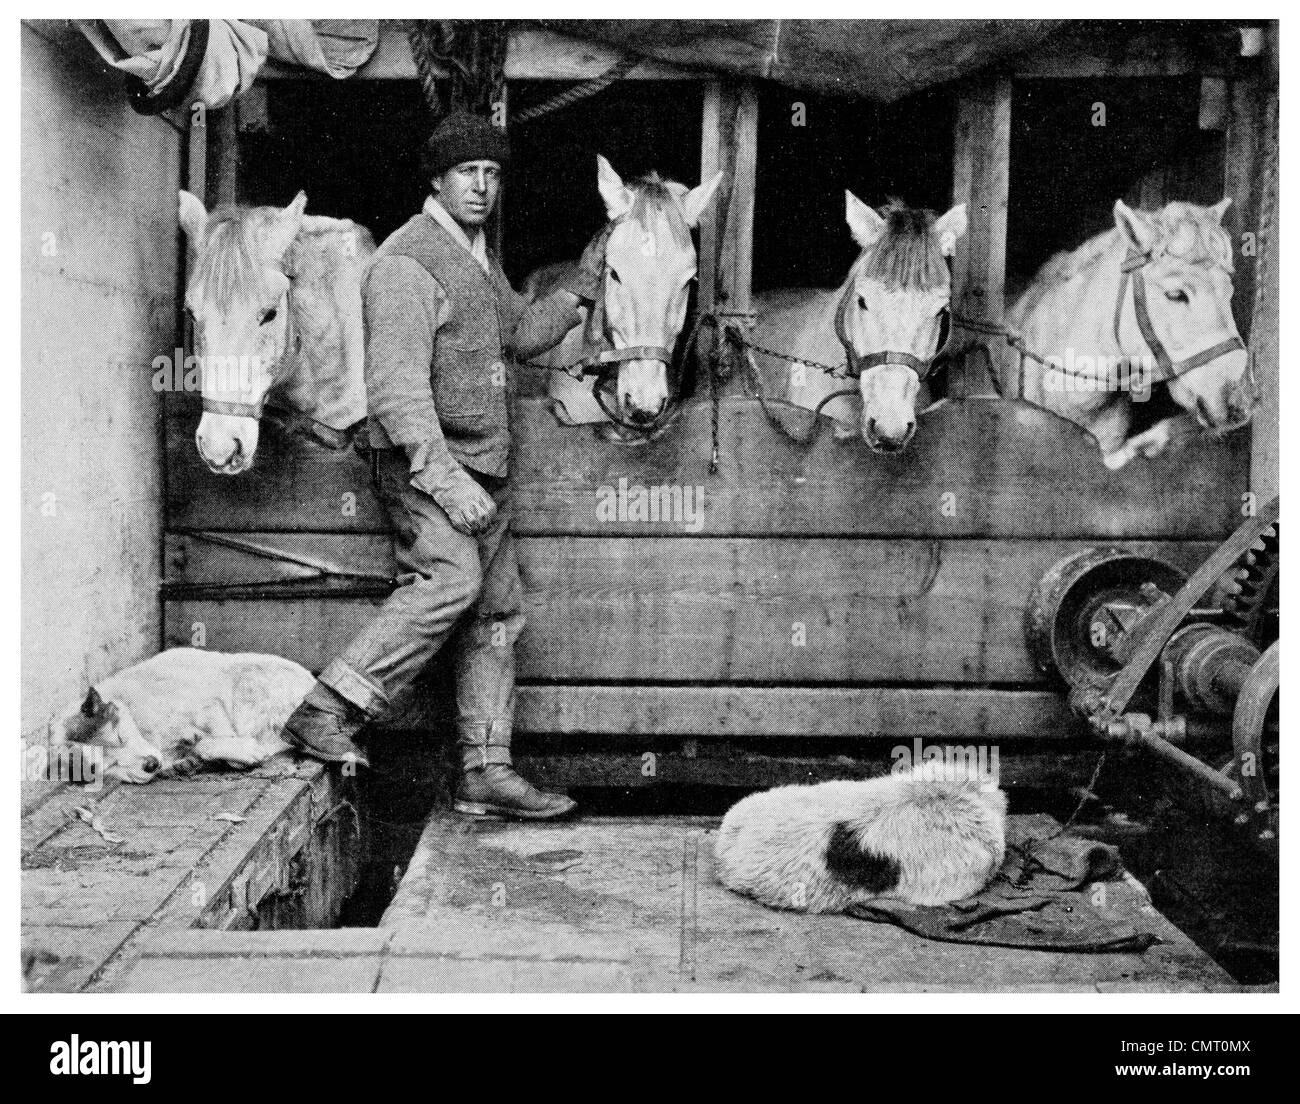 1921 Captain L E G Oates and Siberian Ponies for Captain Scott expedition South Pole Terra Nova Expedition - Stock Image